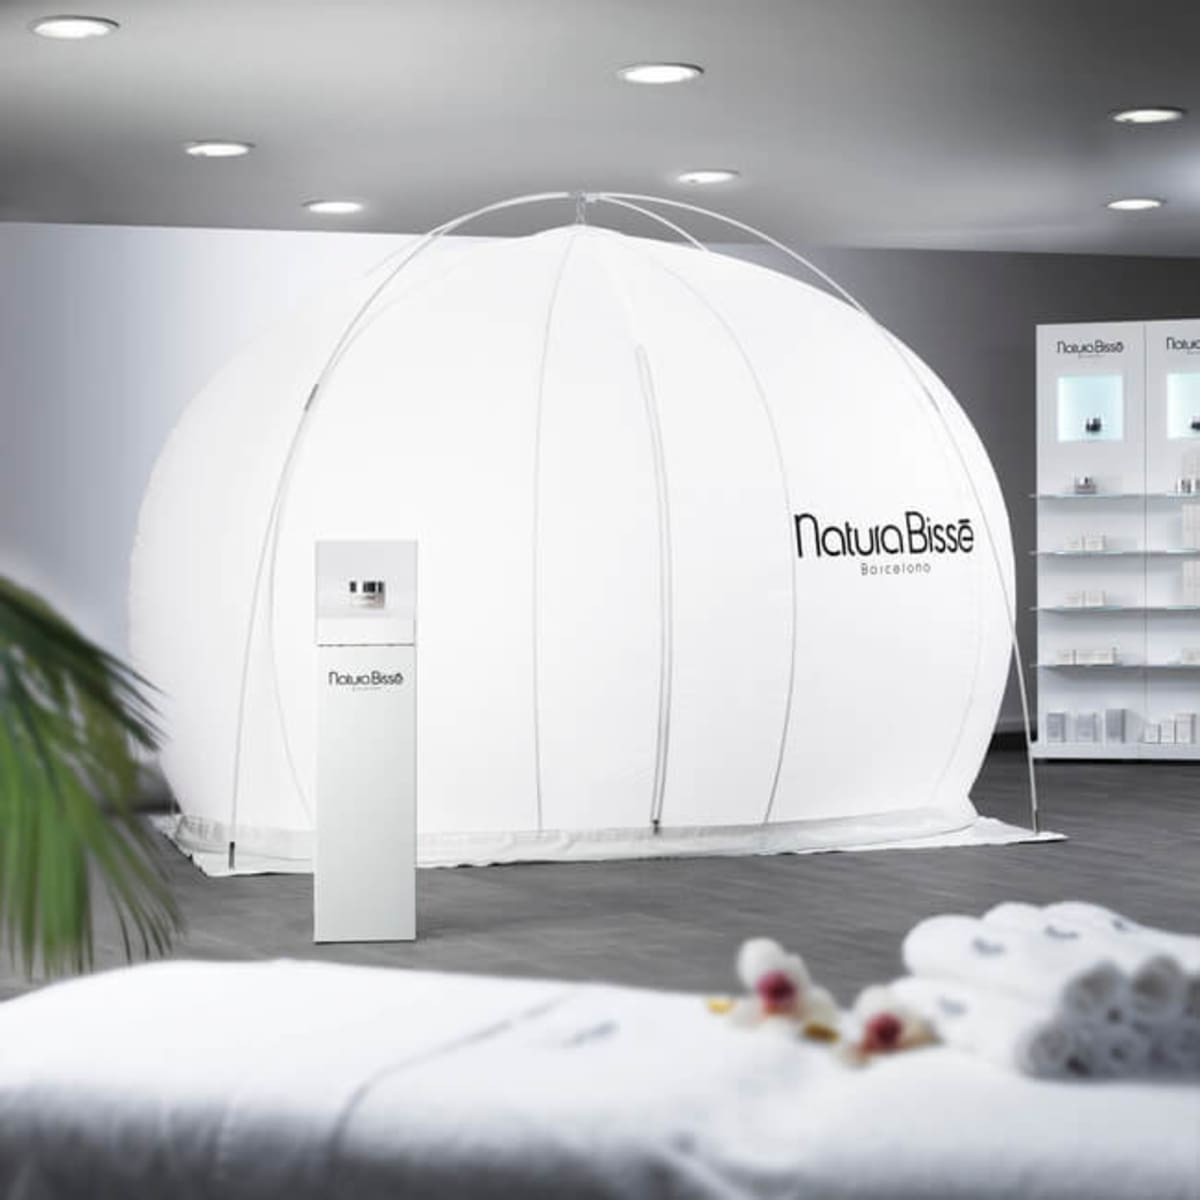 File photo of Natura Bisse oxygen facial bubble